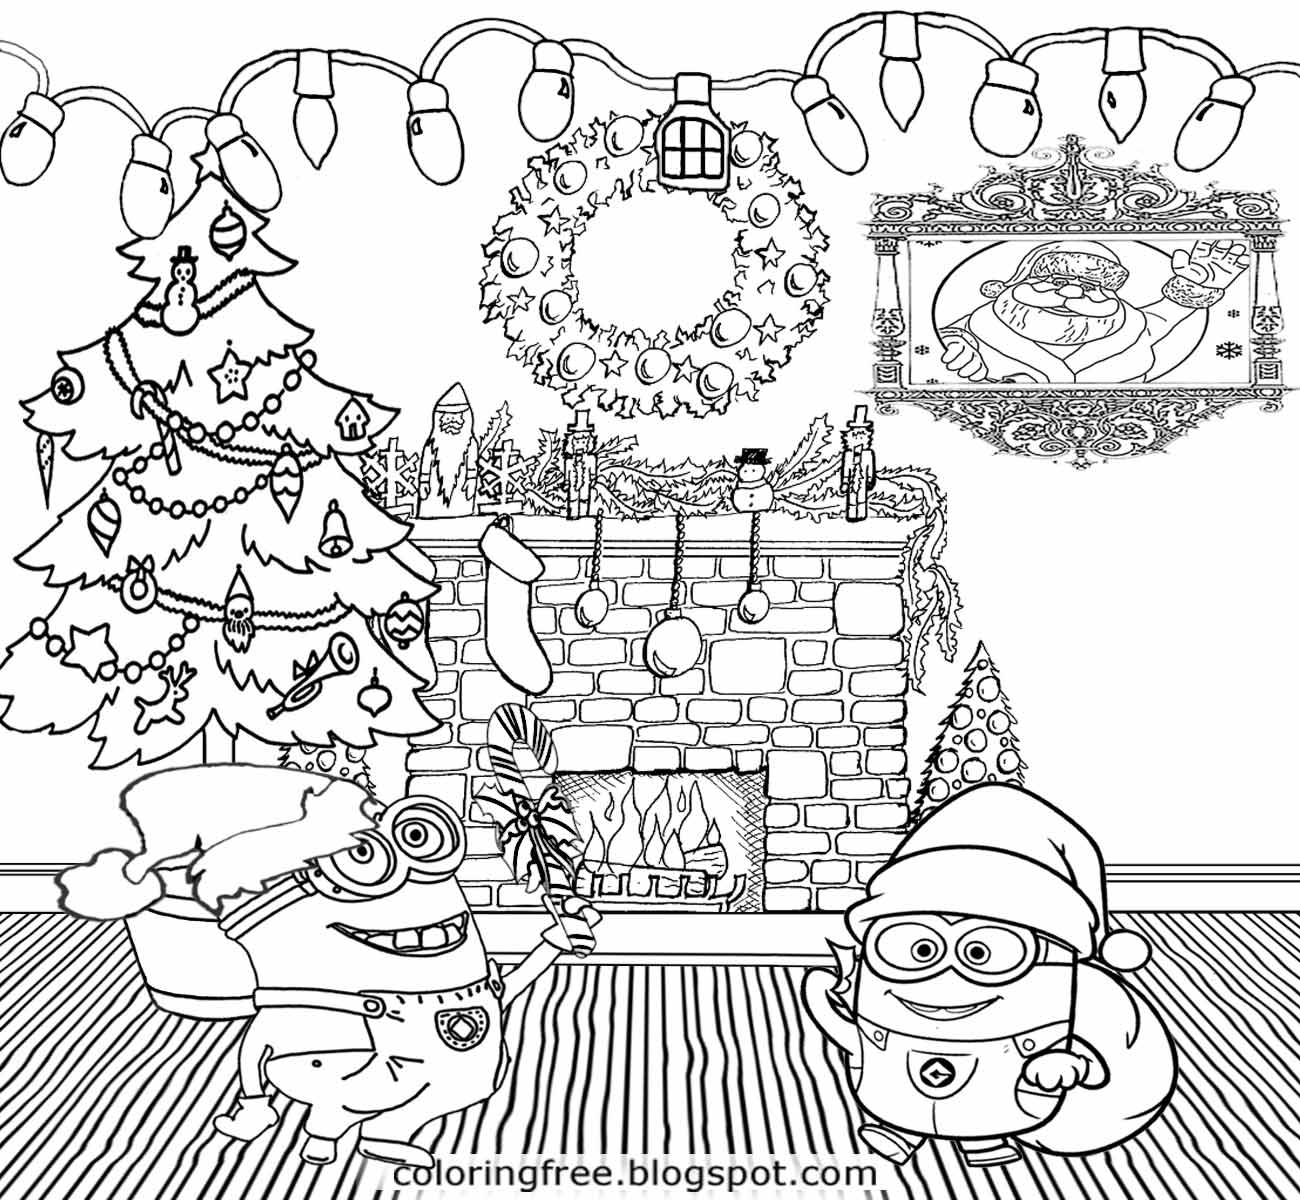 1300x1200 Lets Coloring Book Cool Merry Christmas Minions Coloring Pages